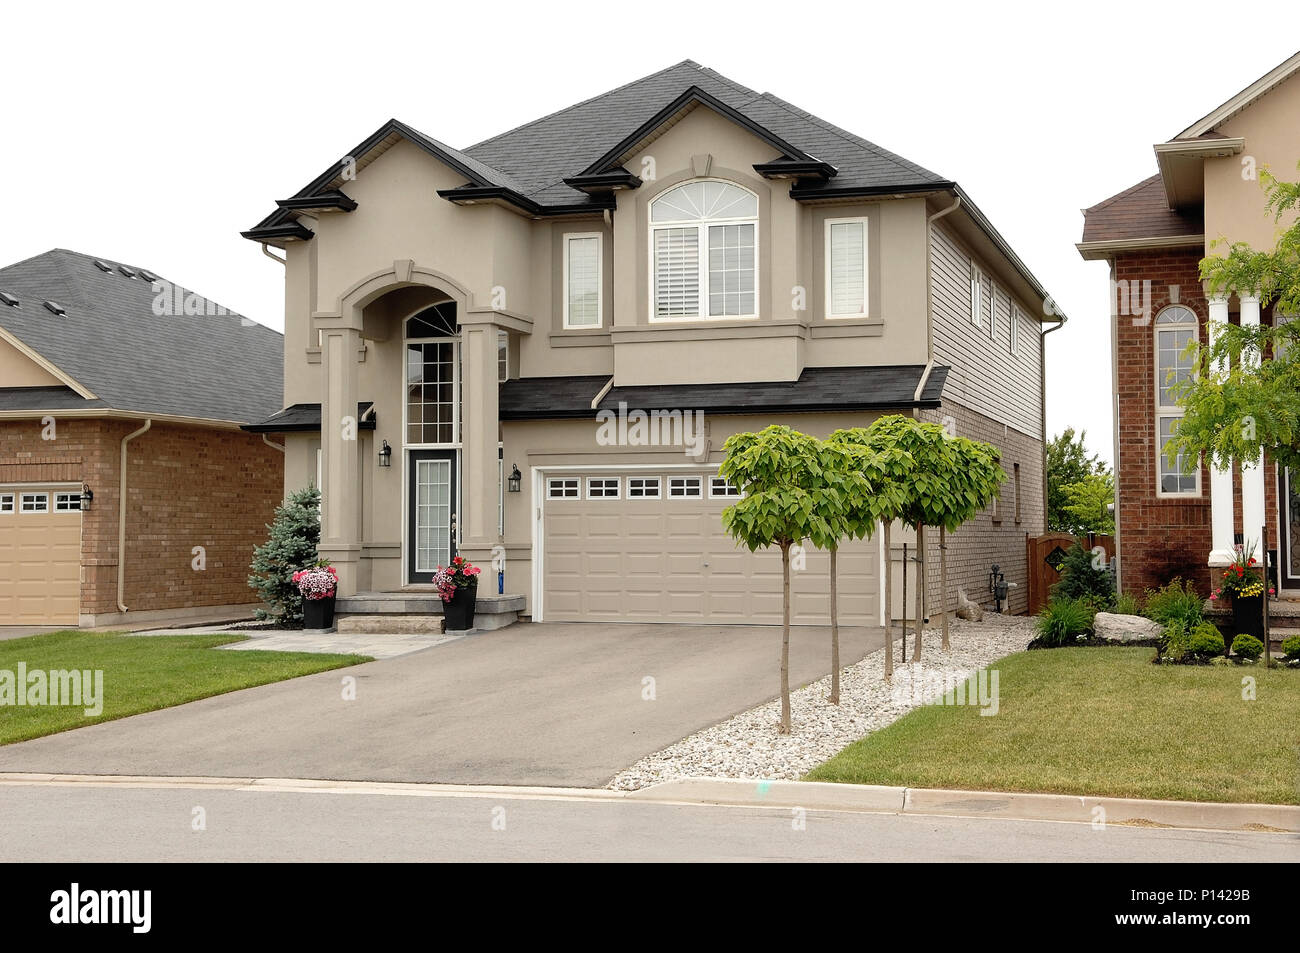 A New Big Two Story House In Subdivision Hamilton Canada With Car Garage And Small Trees